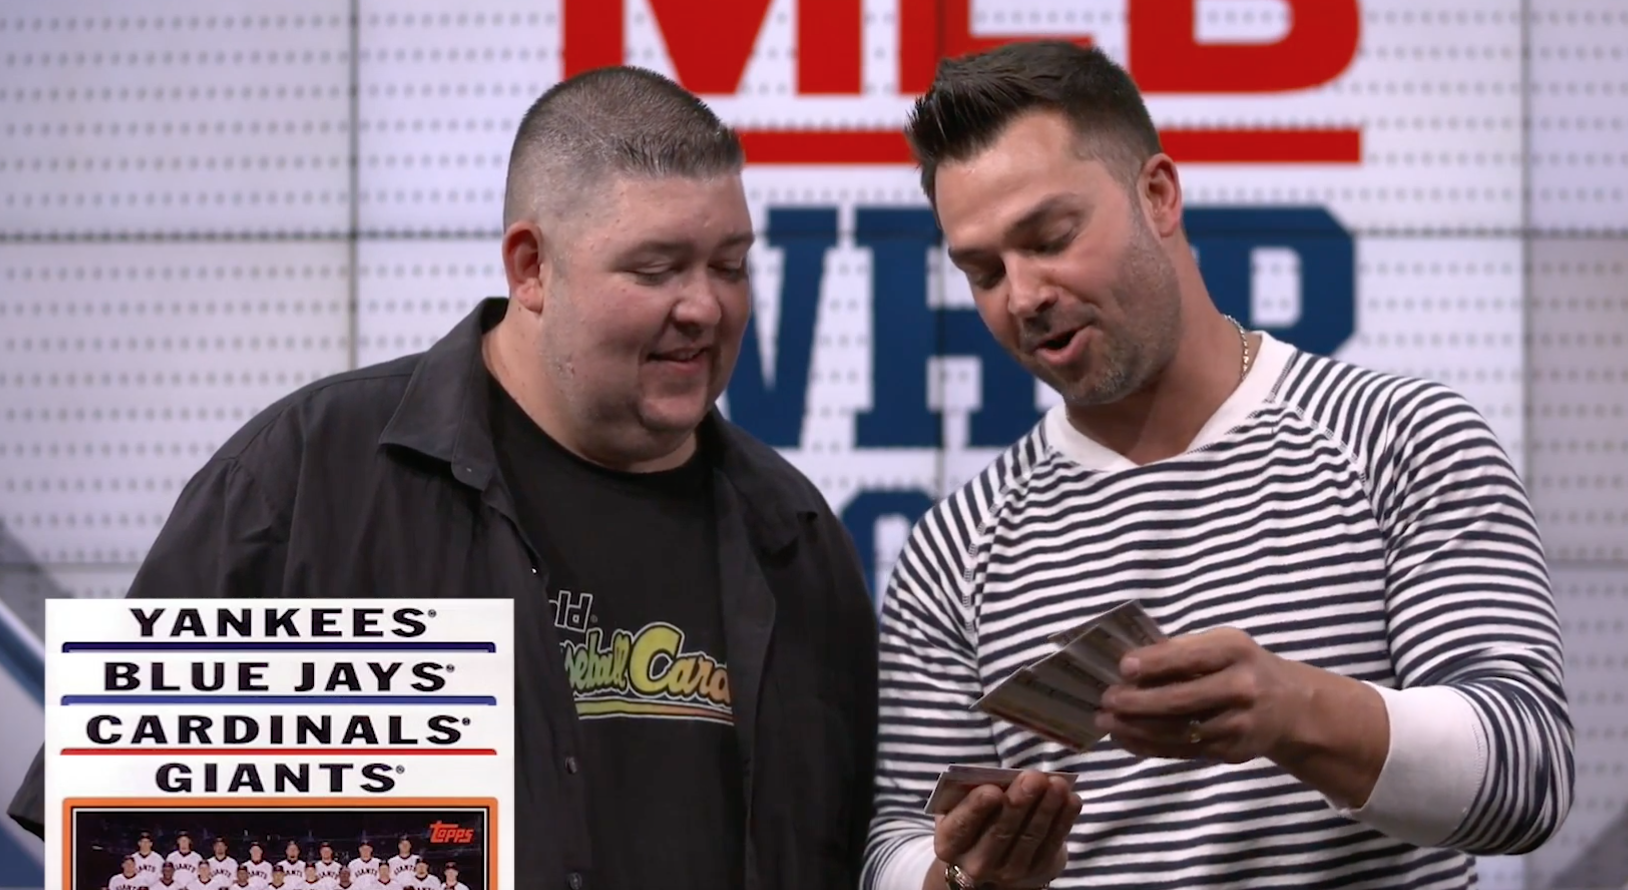 Old Baseball Cards Nick Swisher Talks About His Yankees Days